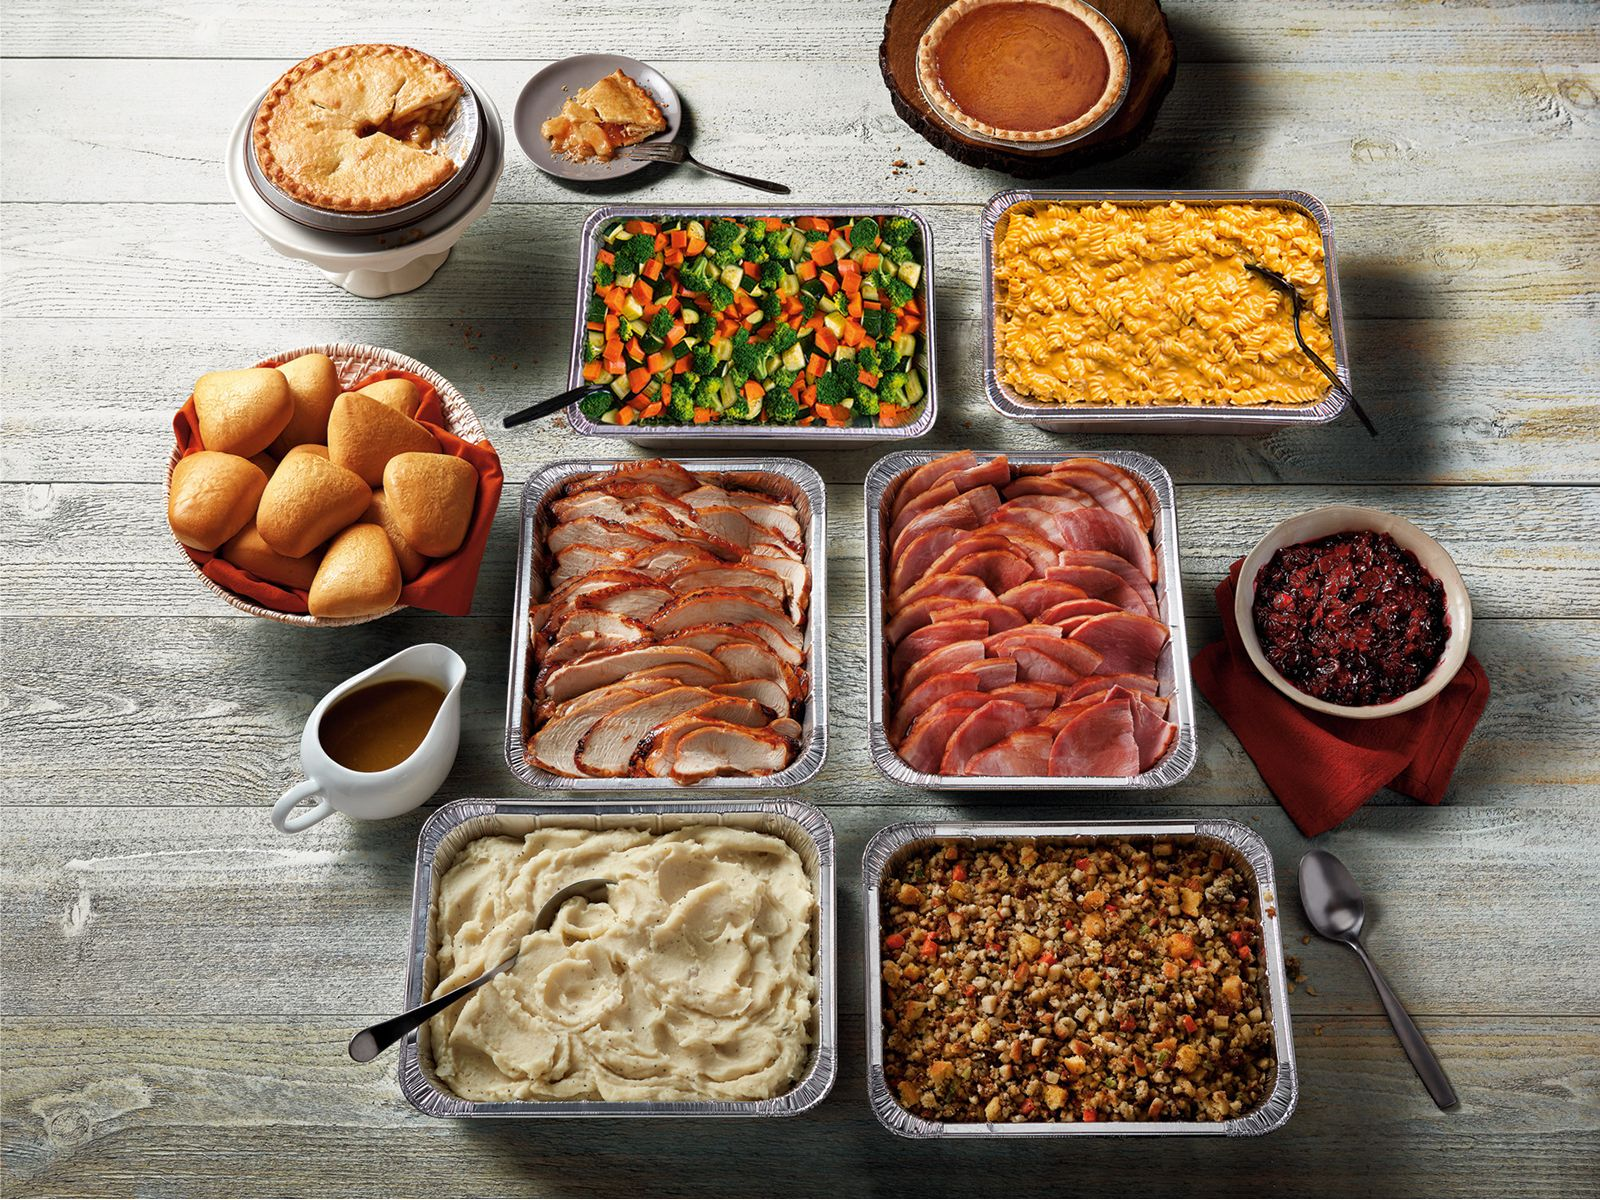 Boston Market Helps Put Joy On The Table This Thanksgiving With Complete Meal Options For Gatherings Of Every Size